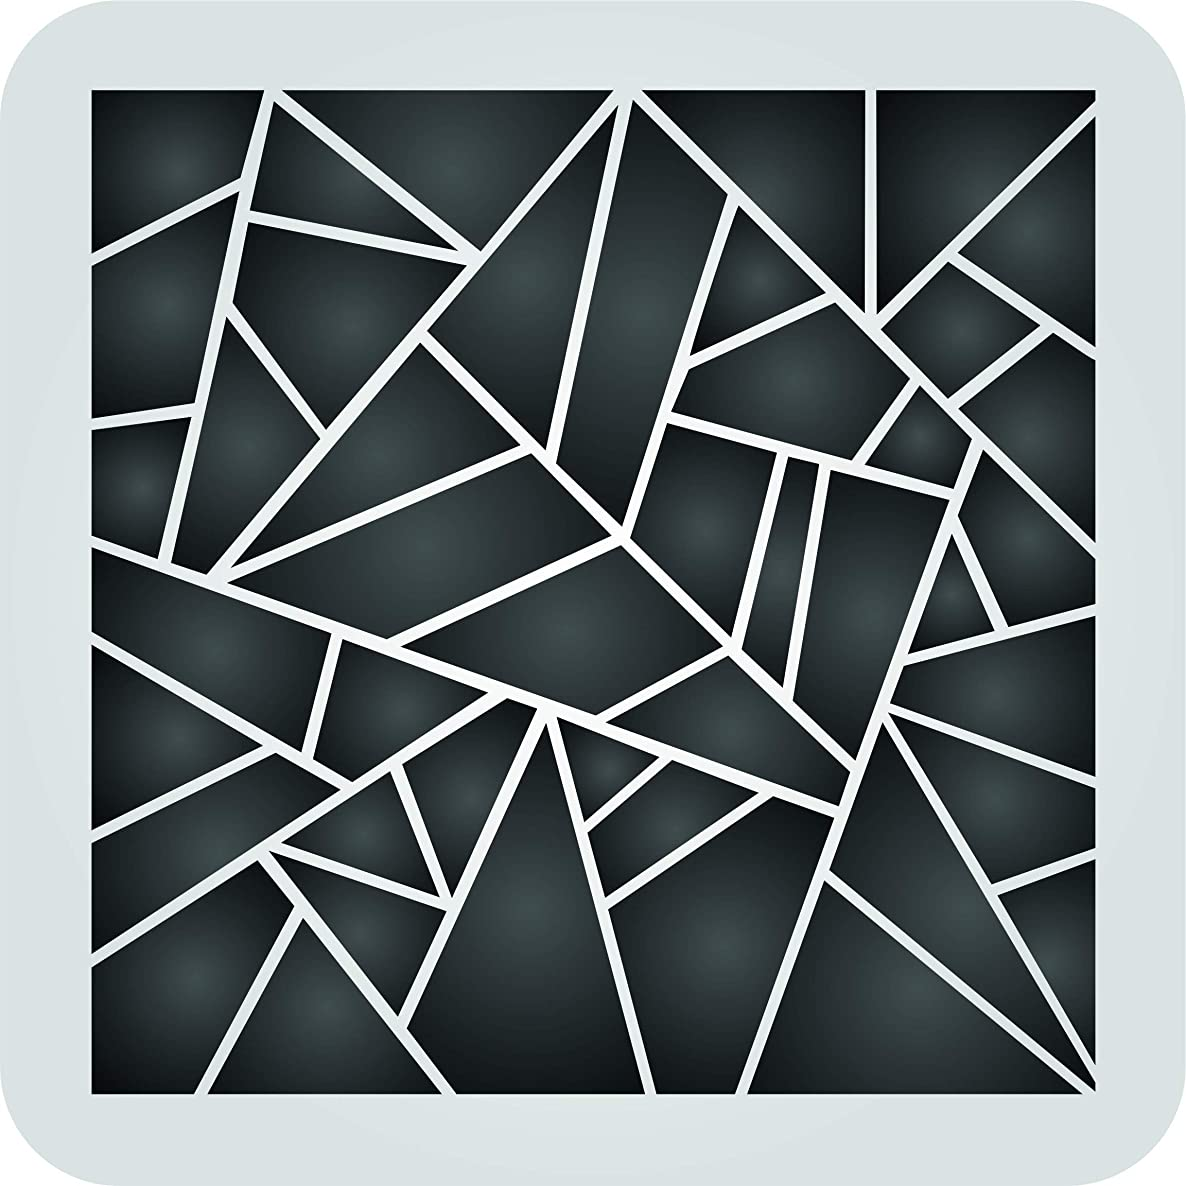 Geometric Stencil - 6.5 x 6.5 inch (S) - Reusable Pattern Wall Art Décor Stencils for Painting - Use on Paper Projects Walls Floors Fabric Furniture Glass Wood etc.